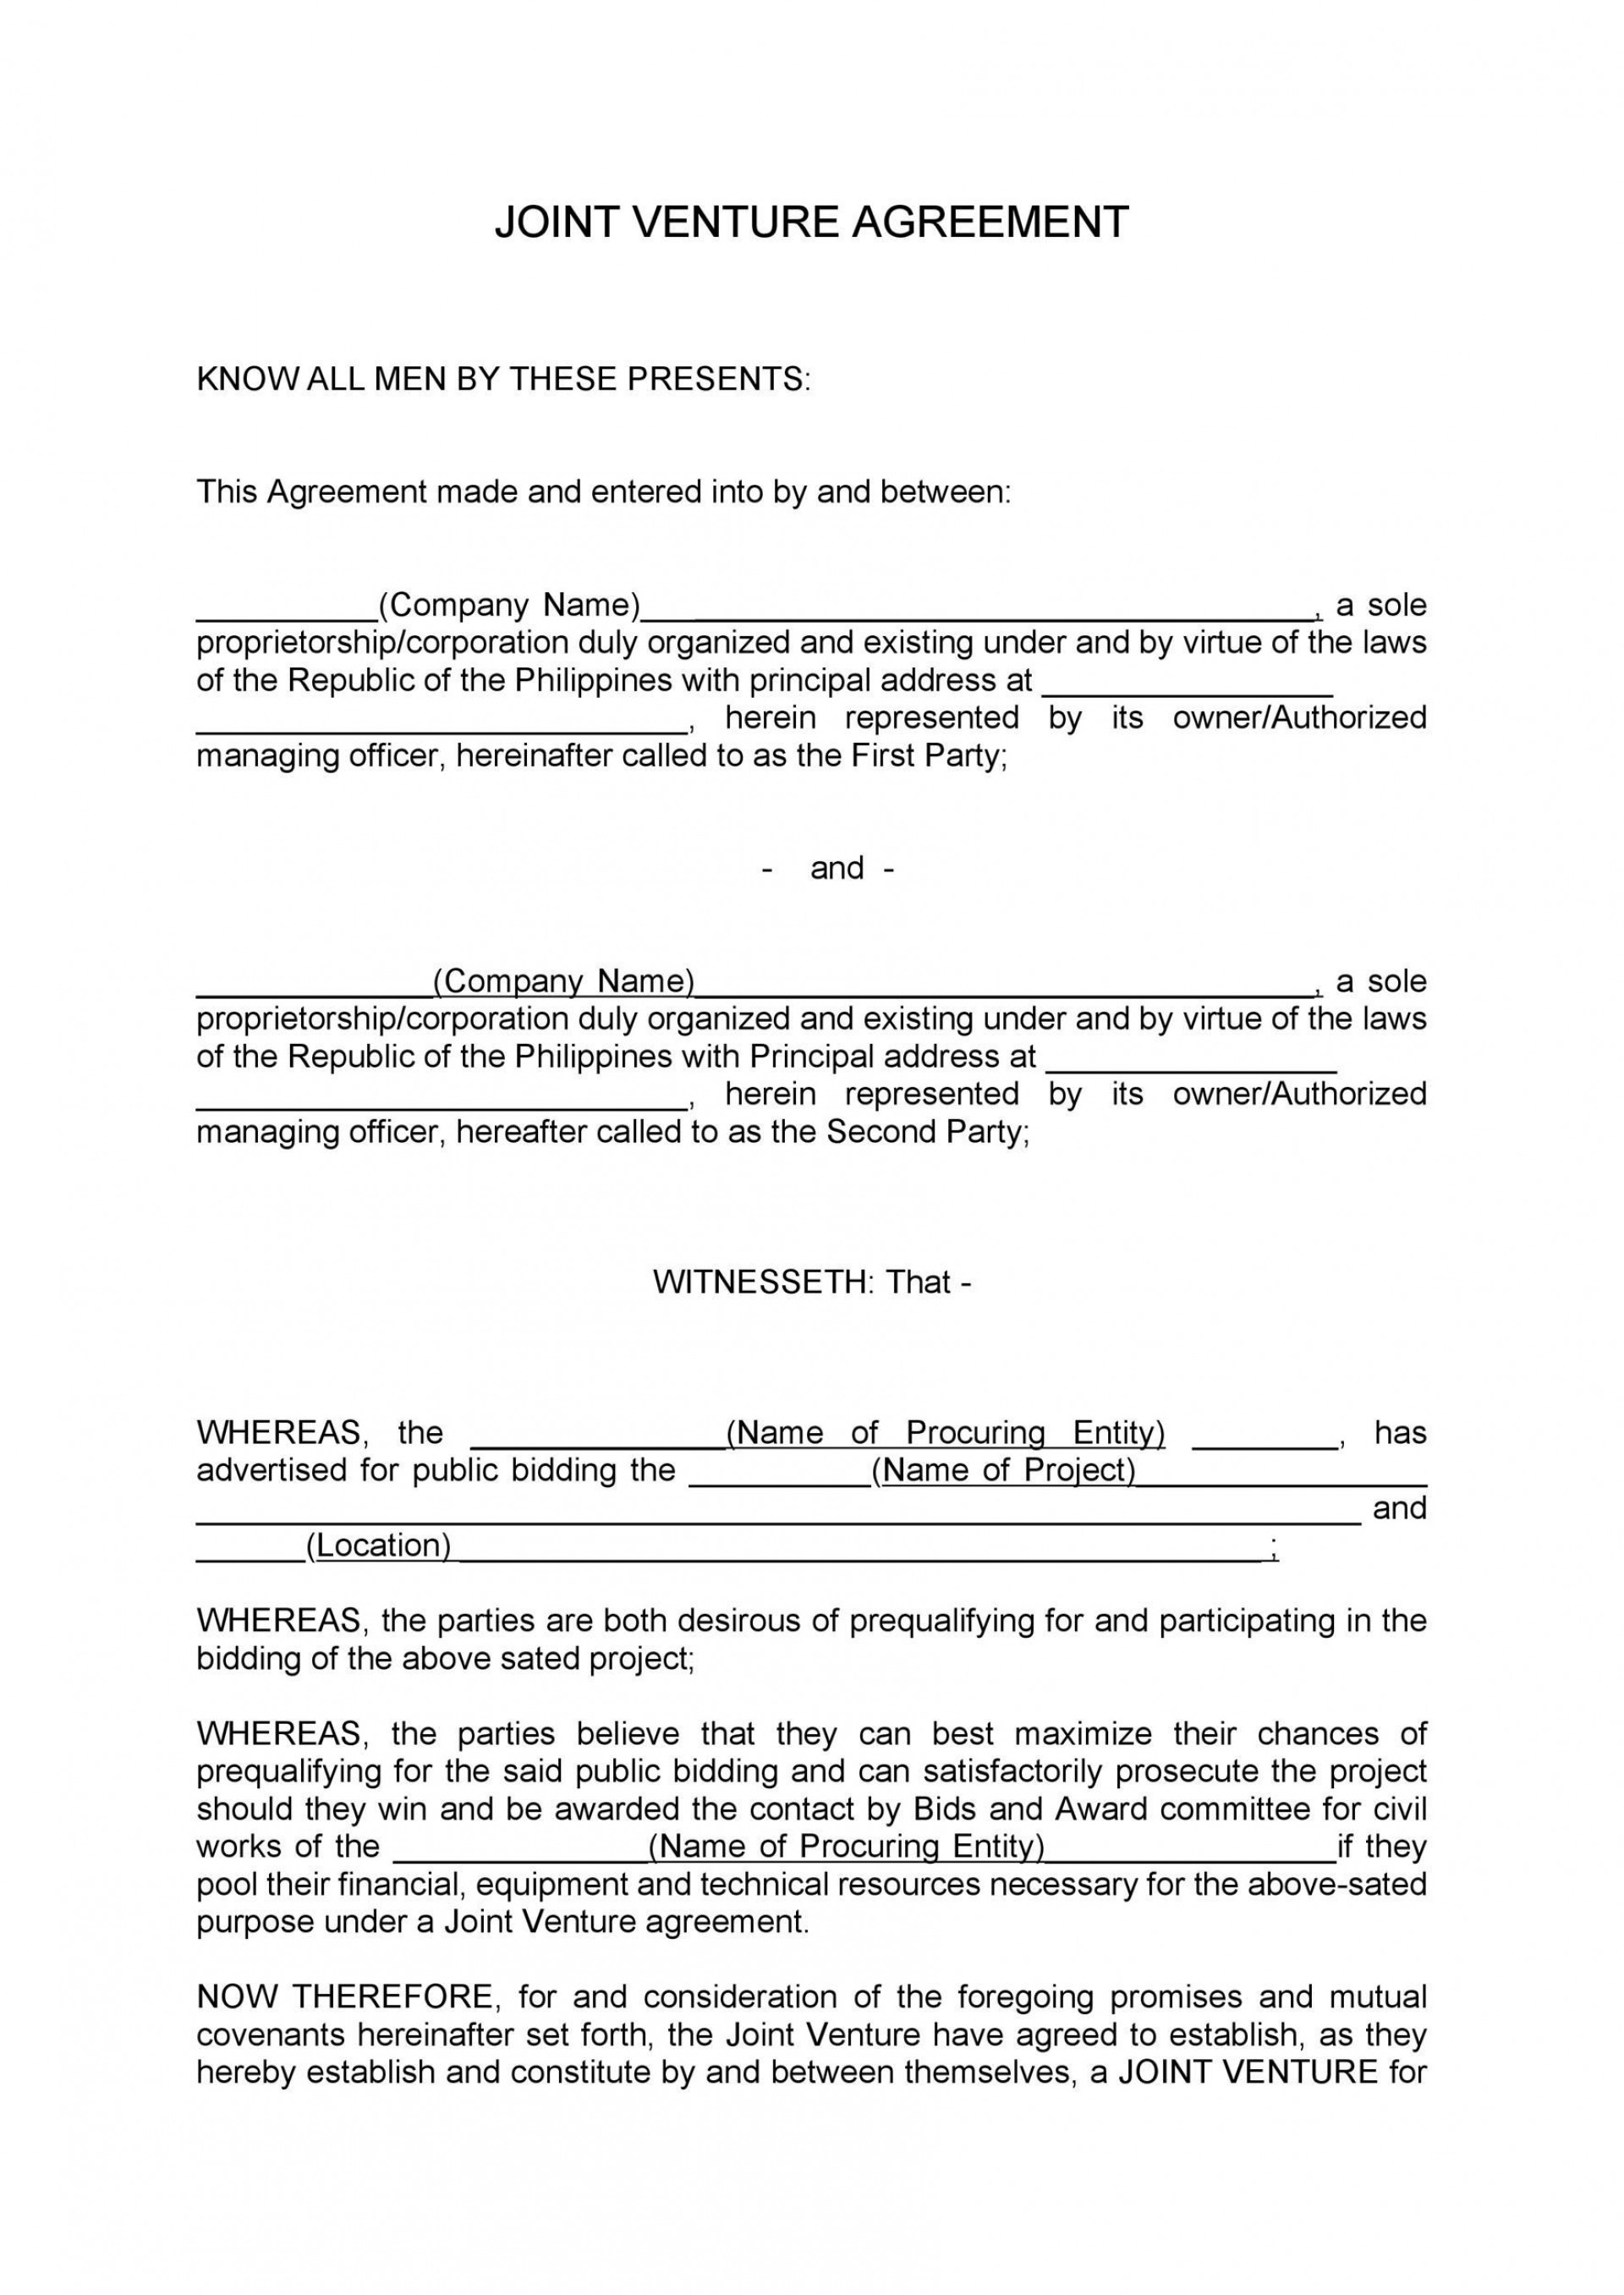 006 Frightening Property Management Contract Sample Philippine Concept 1920